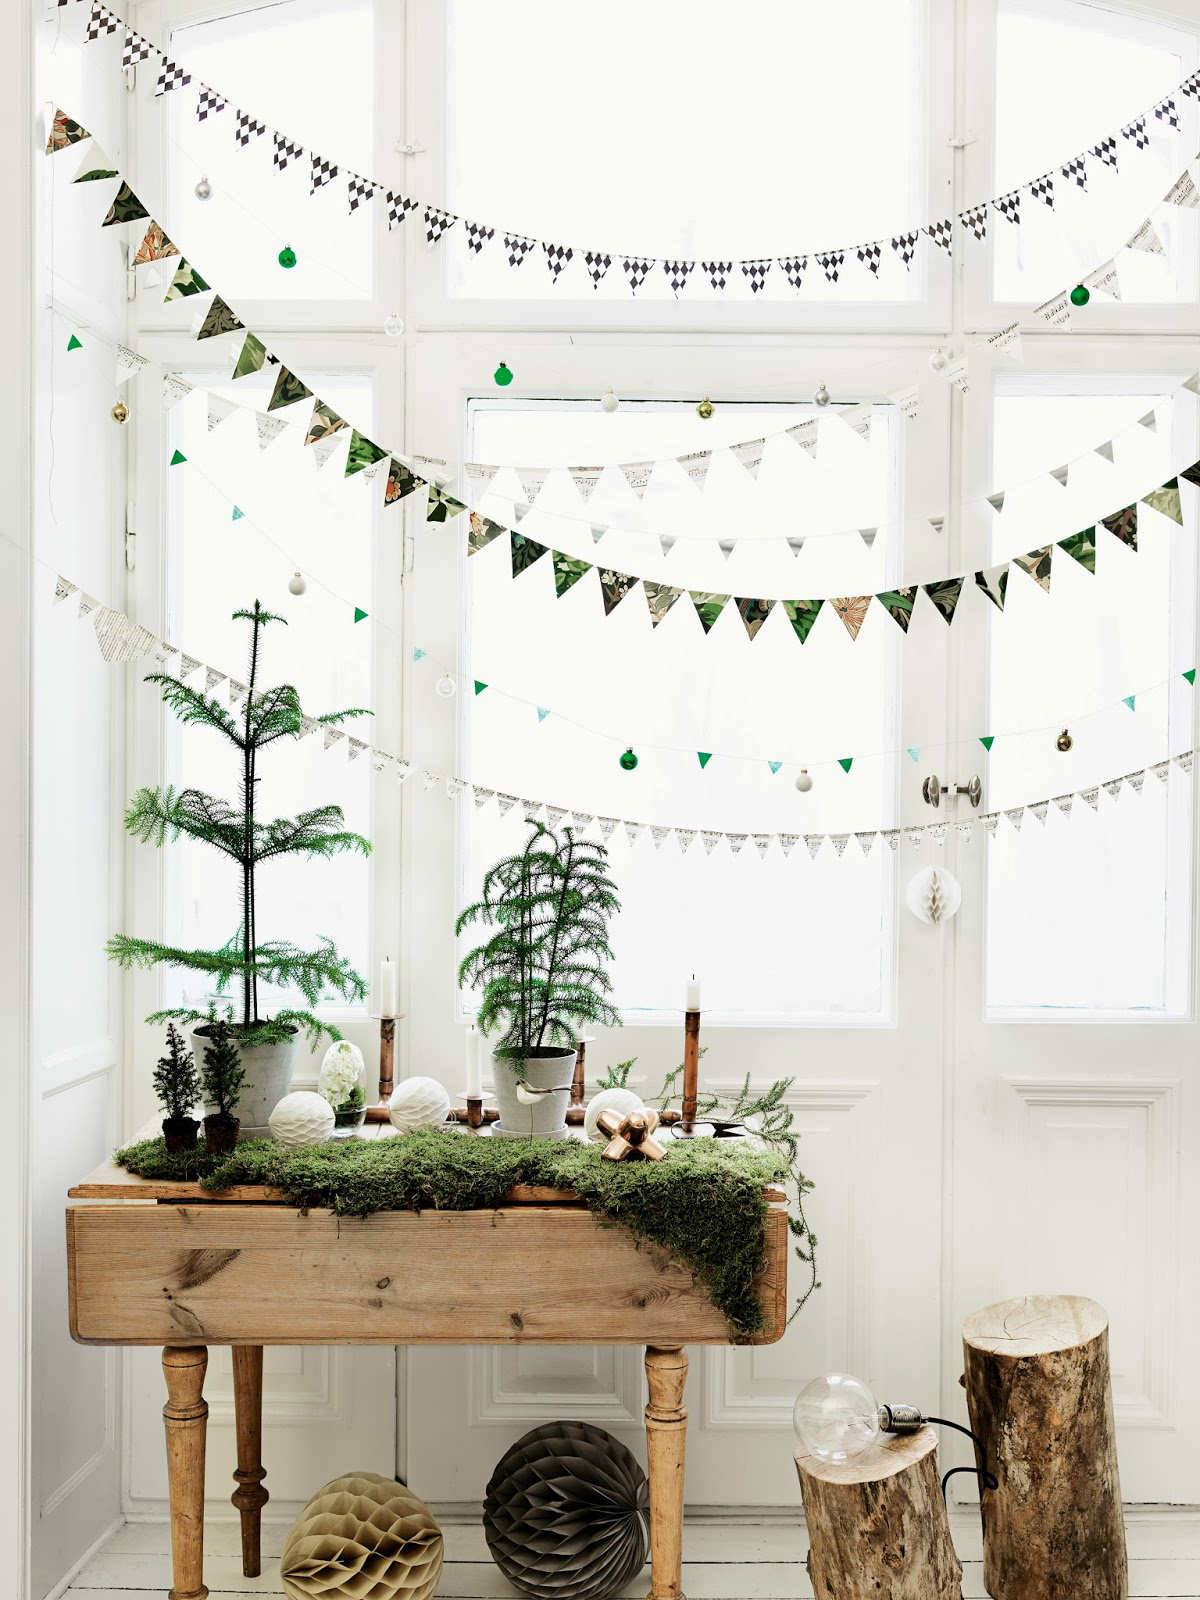 Scandinavian-christmas-patterend-window-garlands. Superpón varias guirnaldas